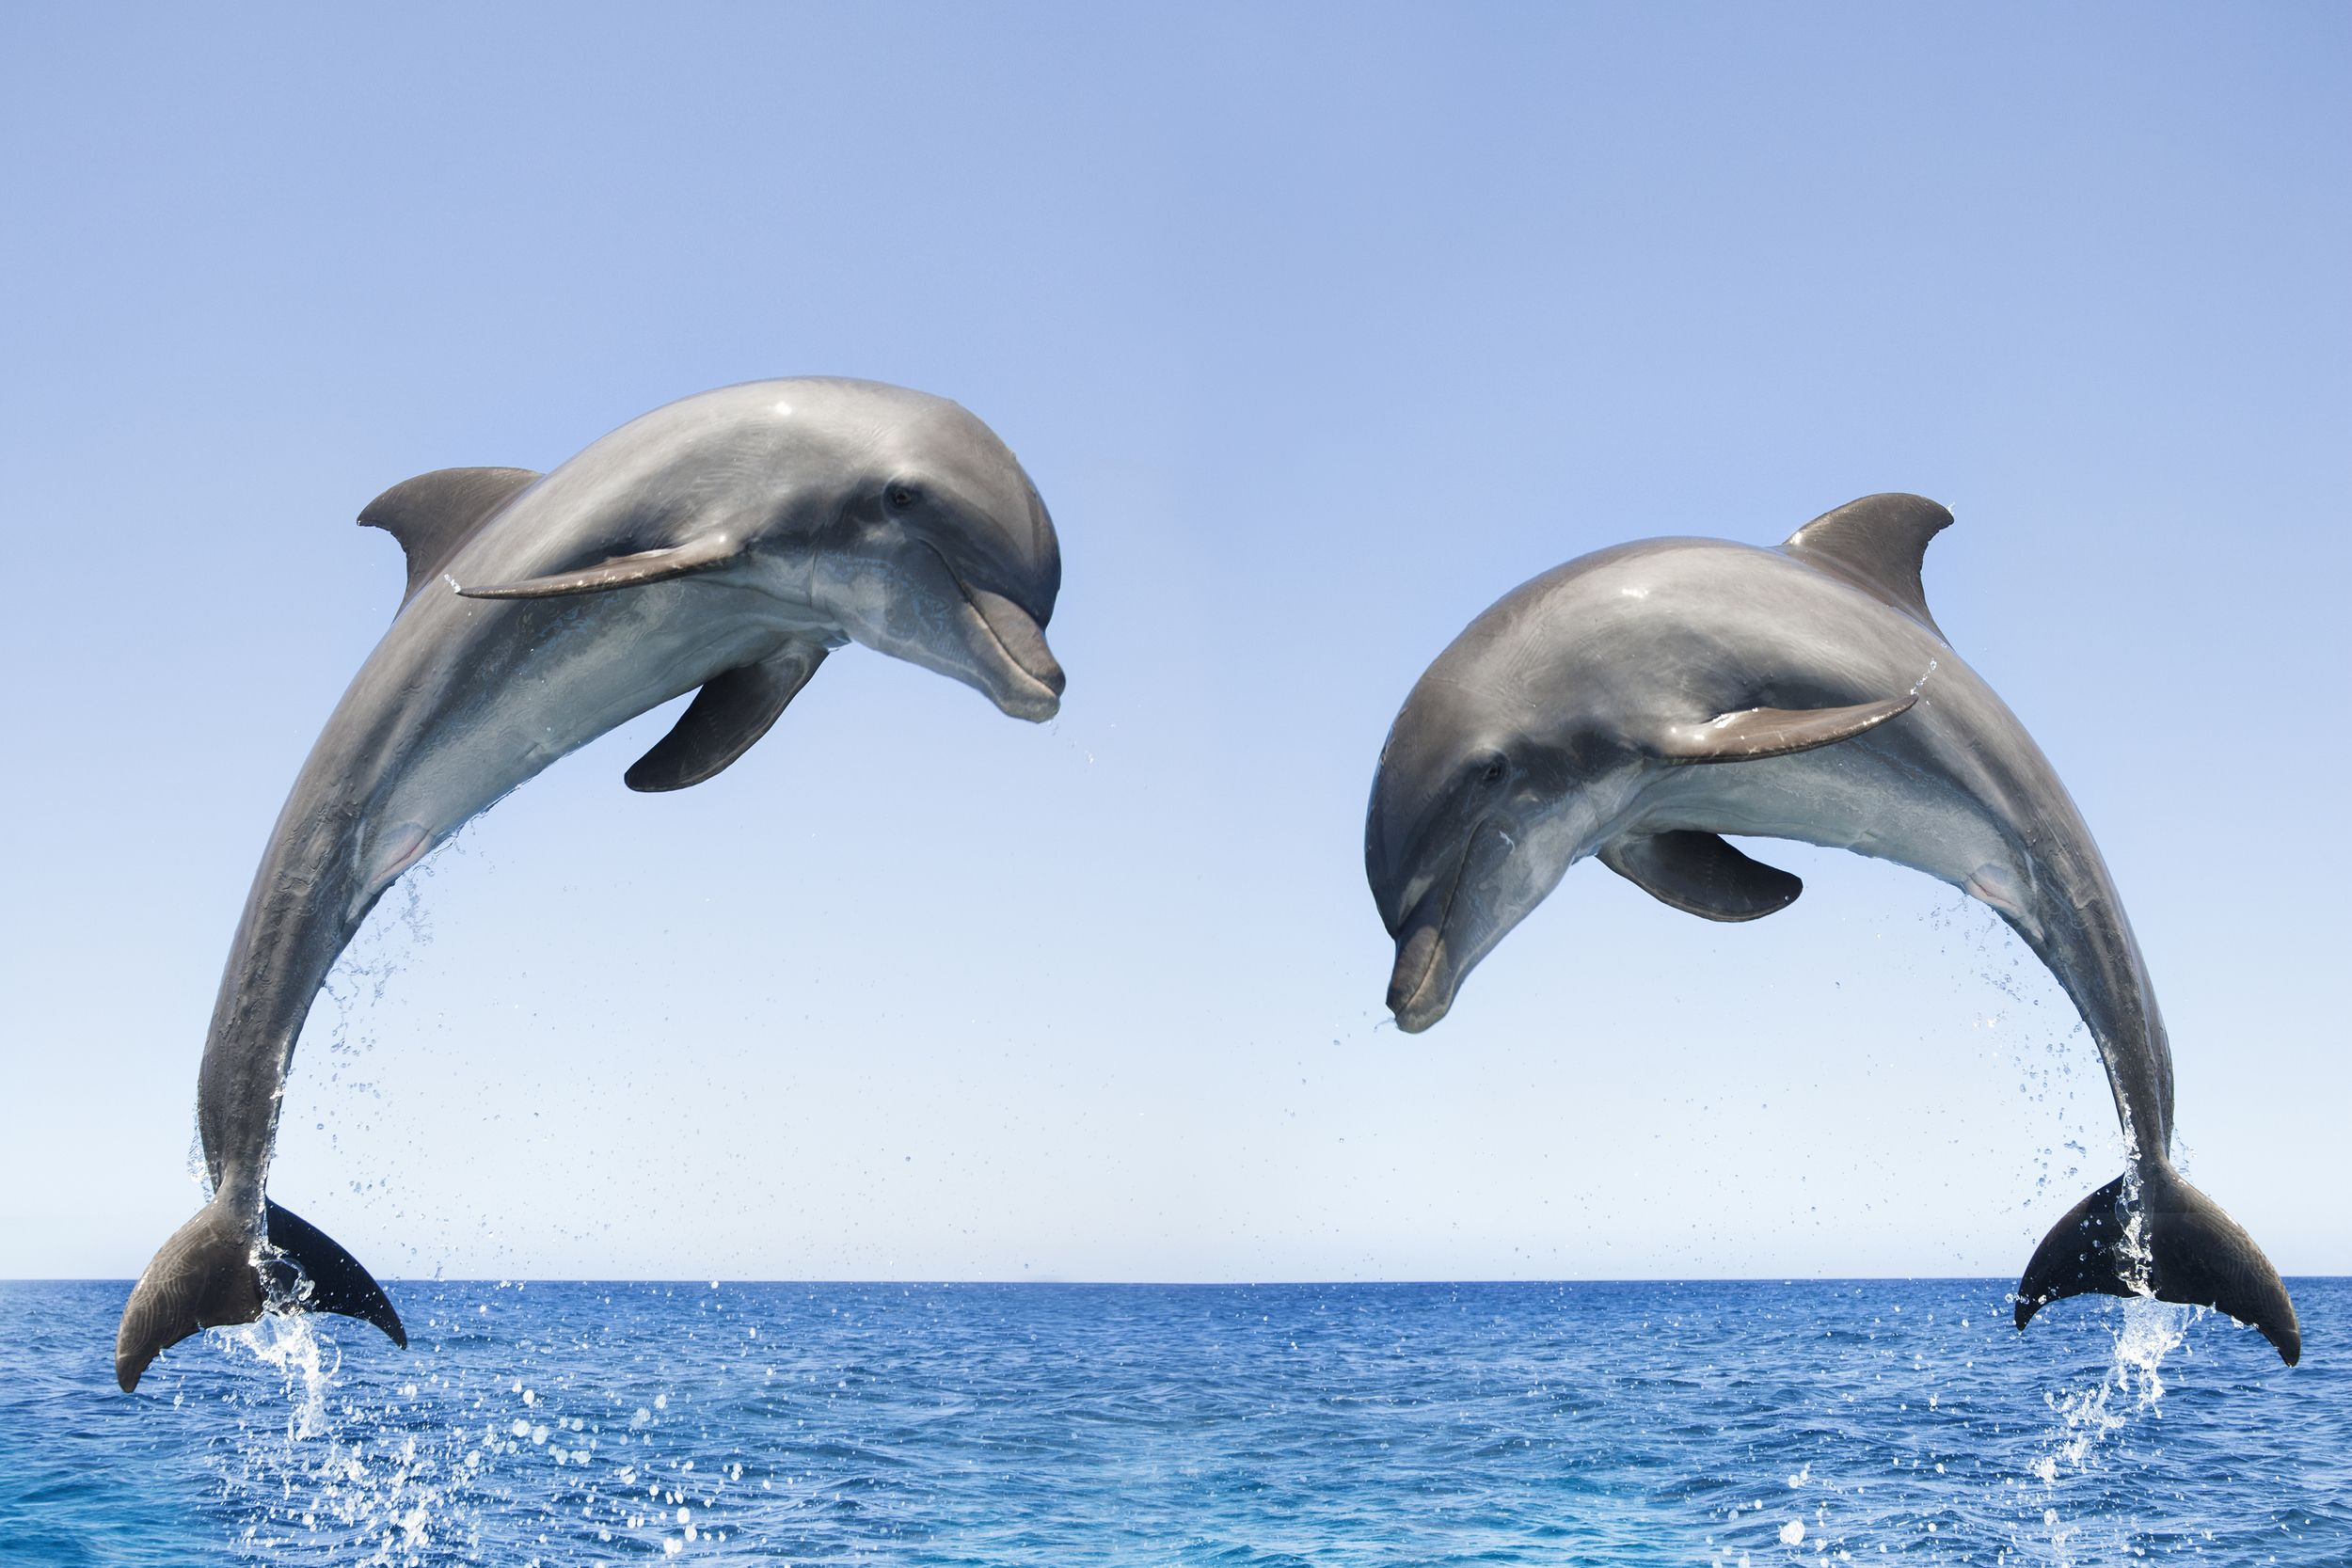 Bottlenose dolphins HD Desktop Wallpapers | 7wallpapers.net